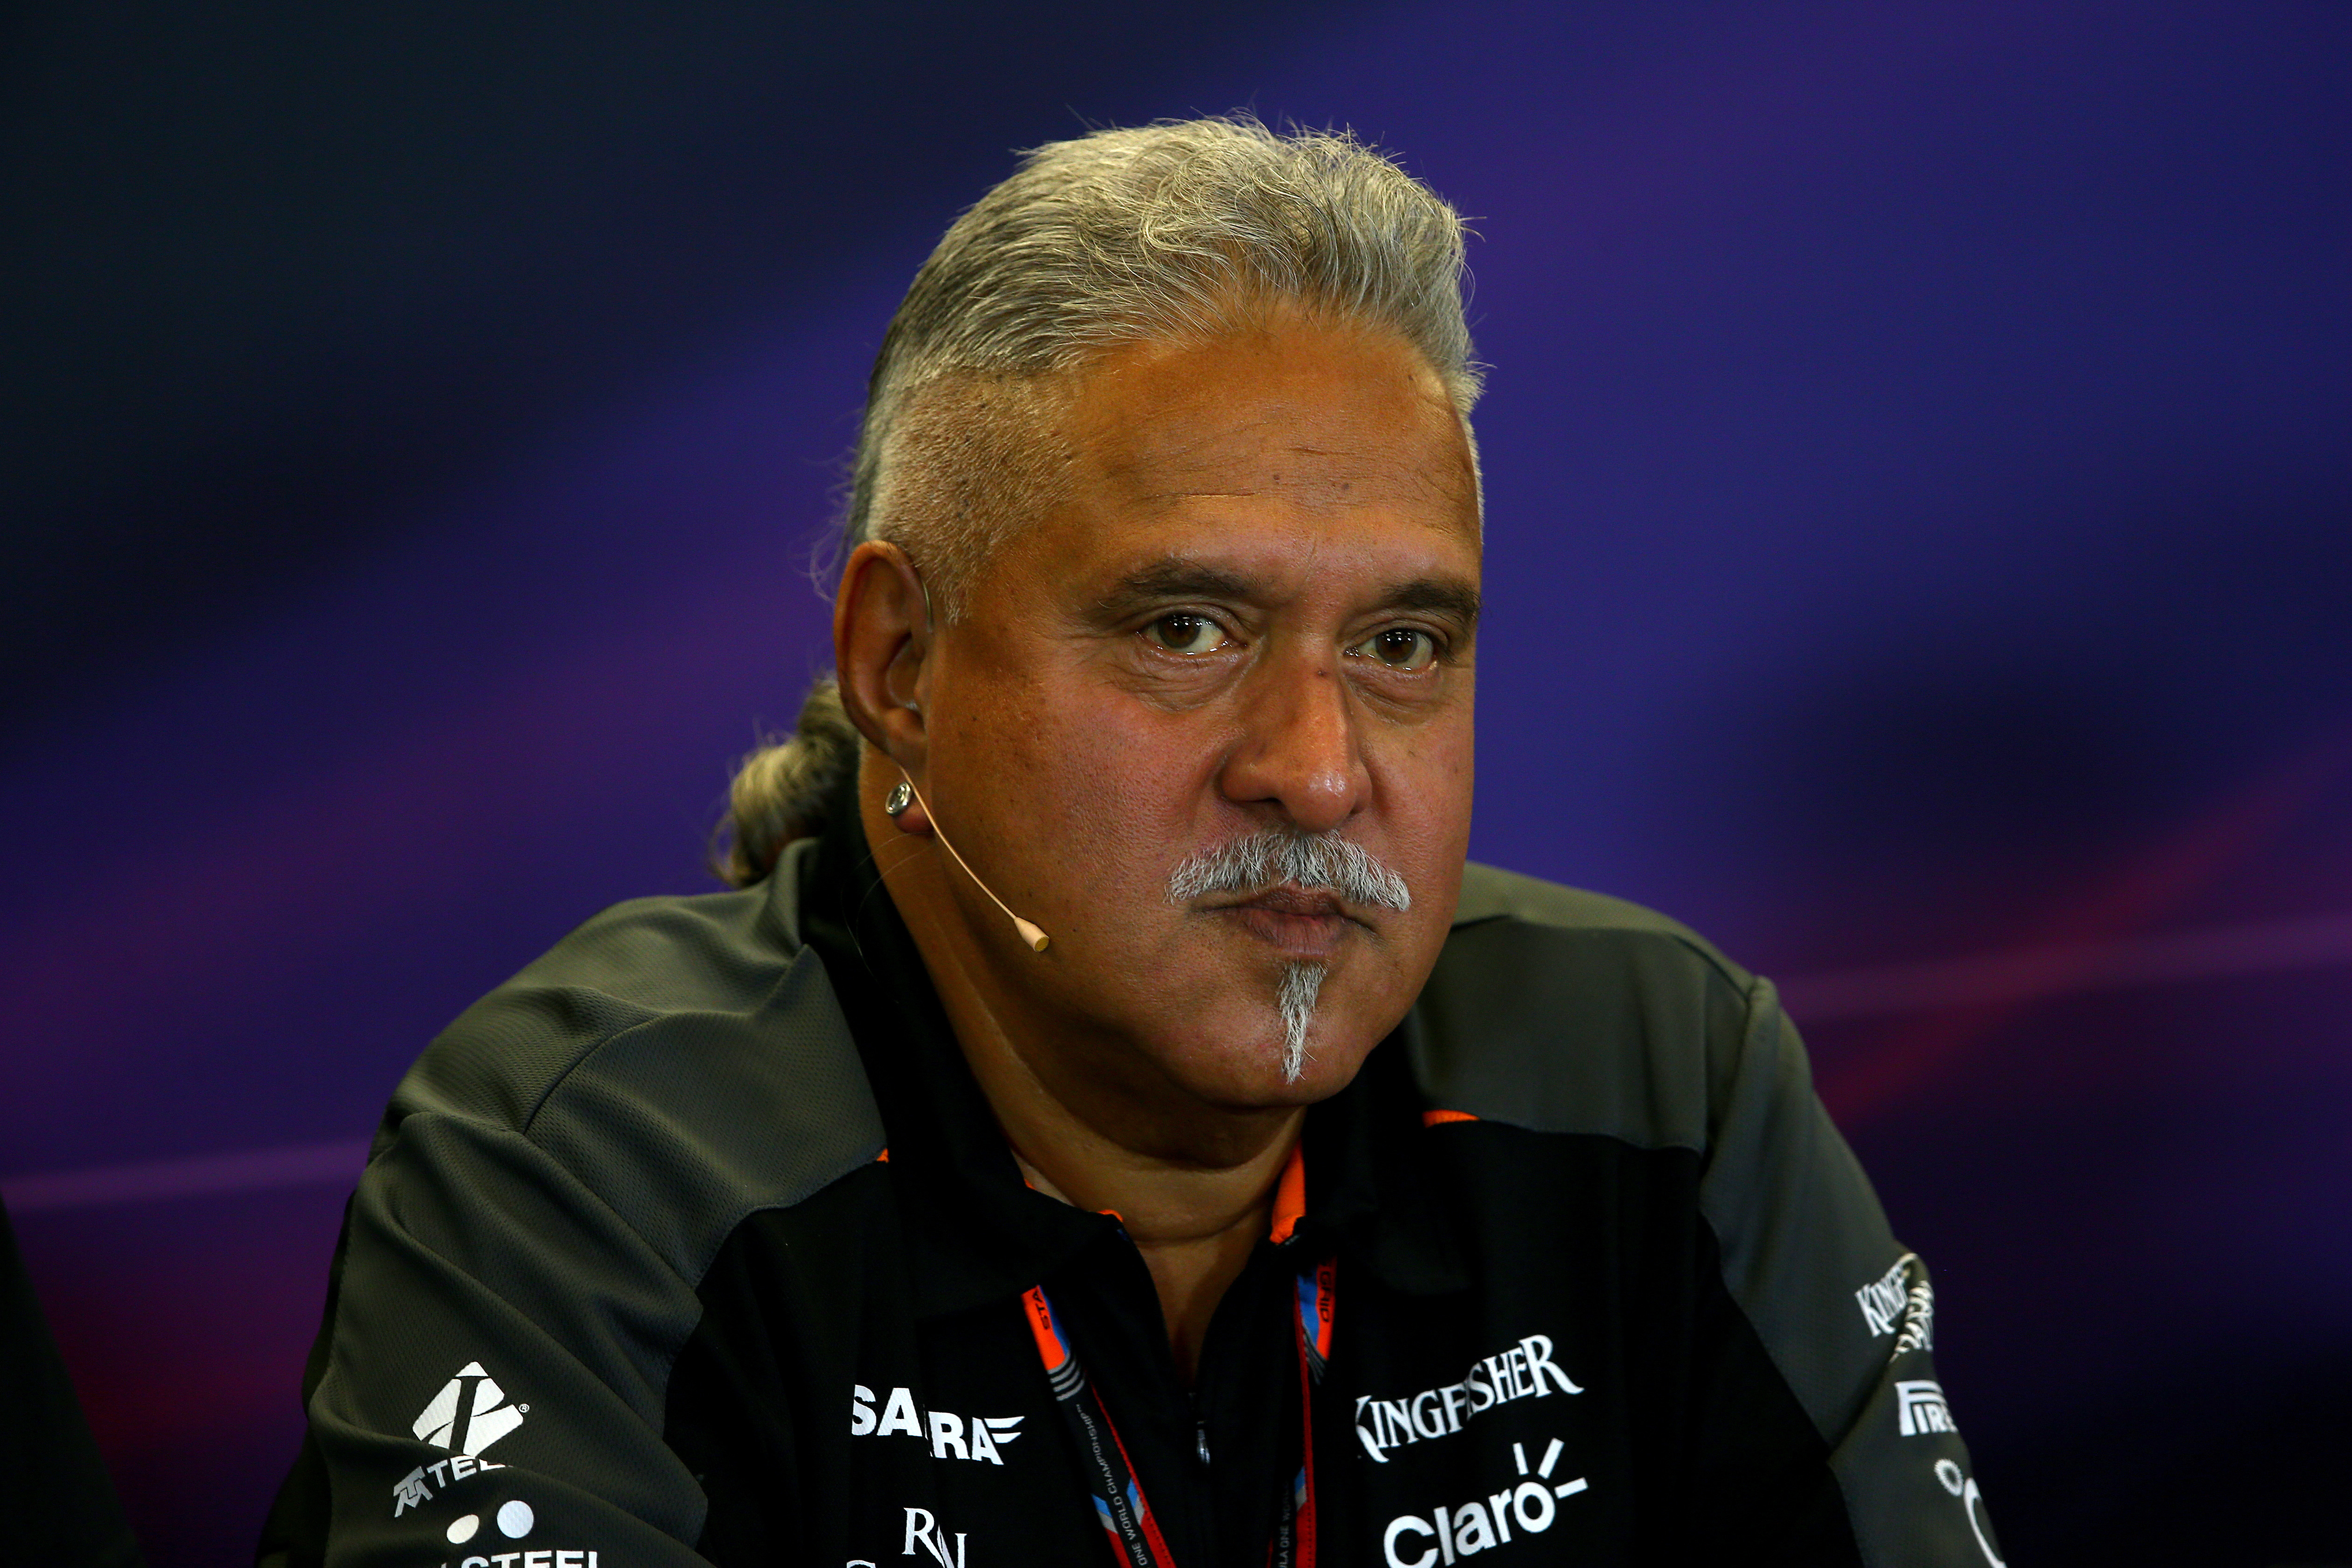 Vijay Mallya attends a press conference after practice for the U.S. Formula 1 Grand Prix at Circuit of the Americas on Oct. 23, 2015, in Austin